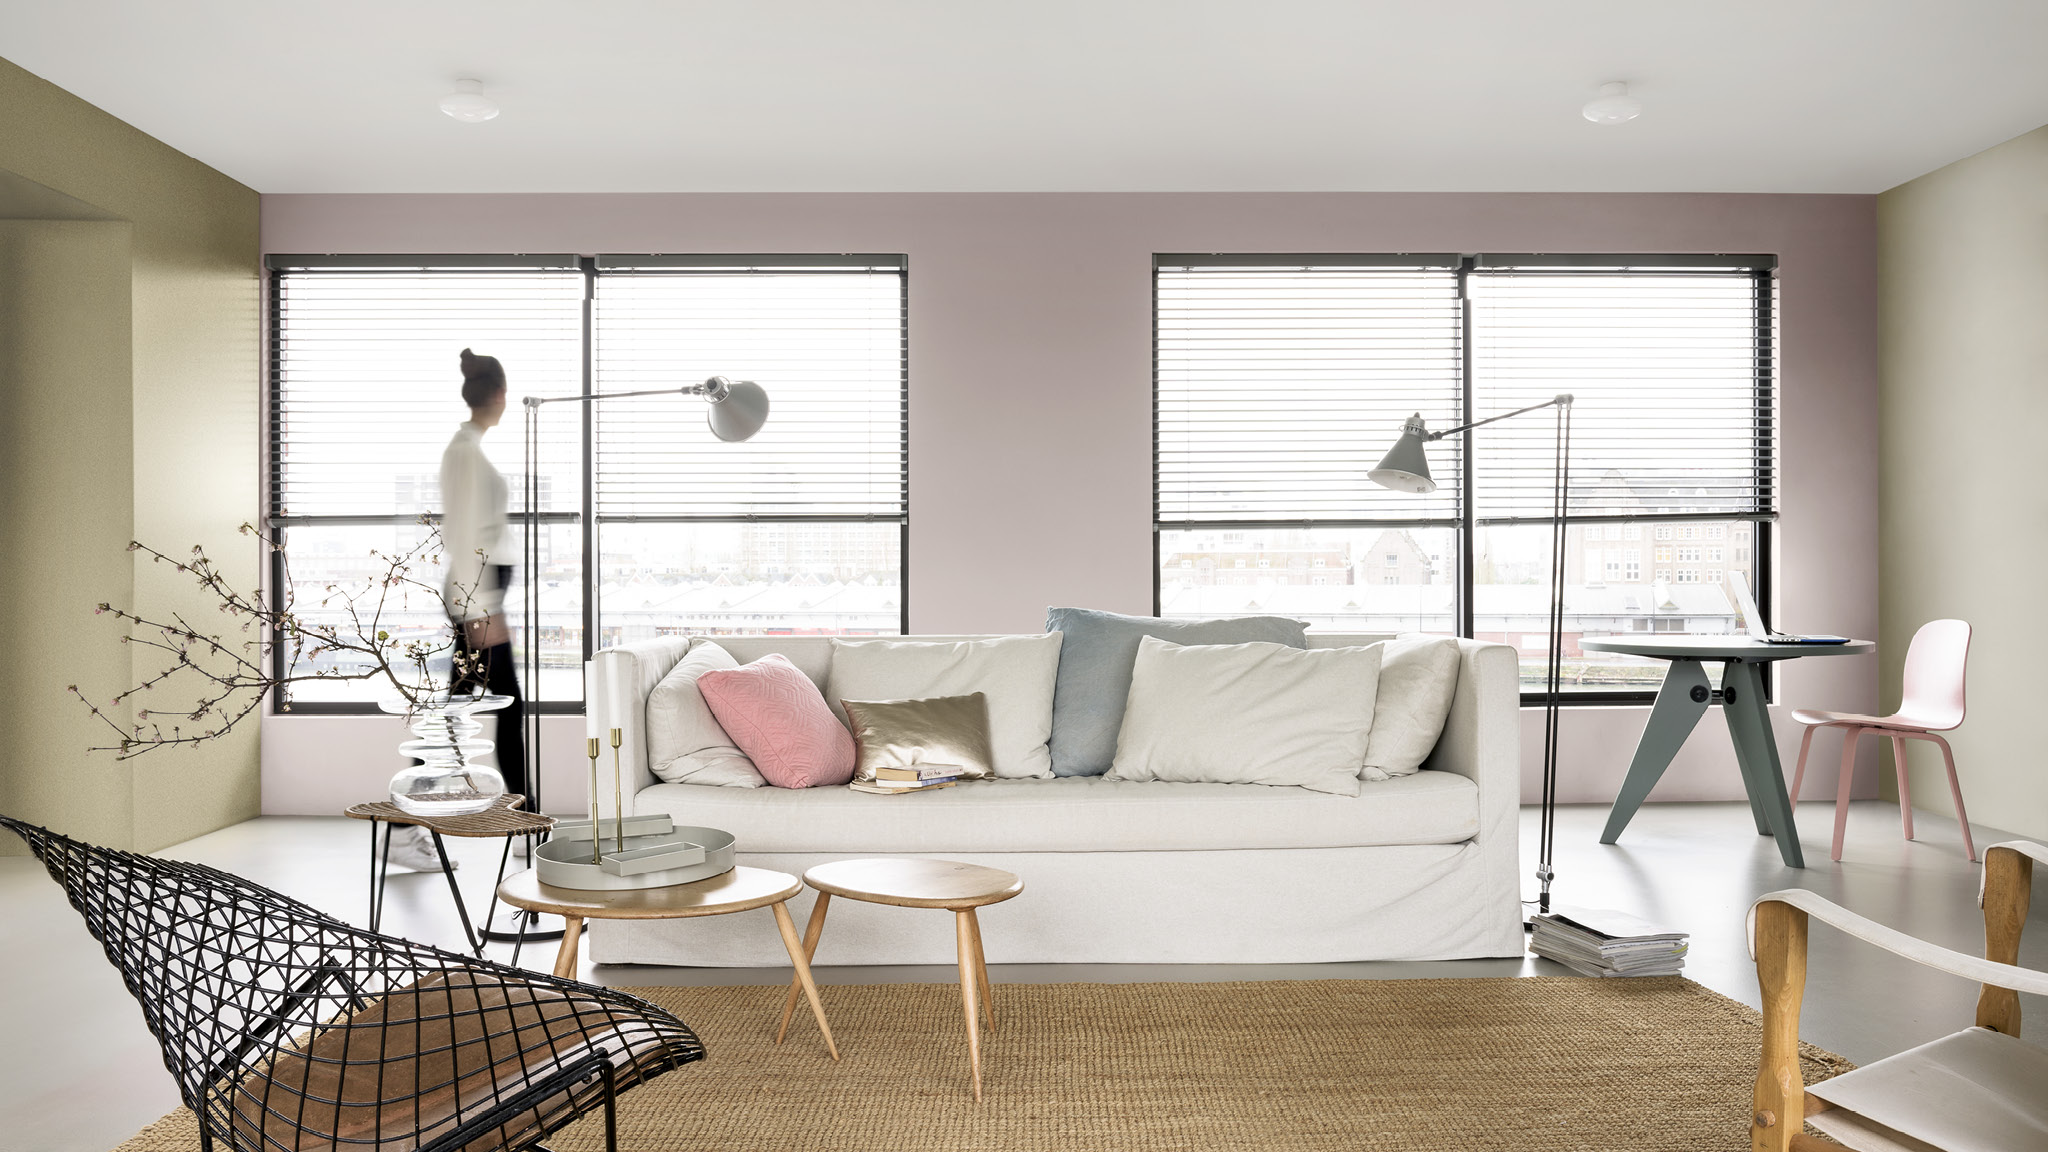 Ambiance inspiration couleurs Fresh & Airy - salon